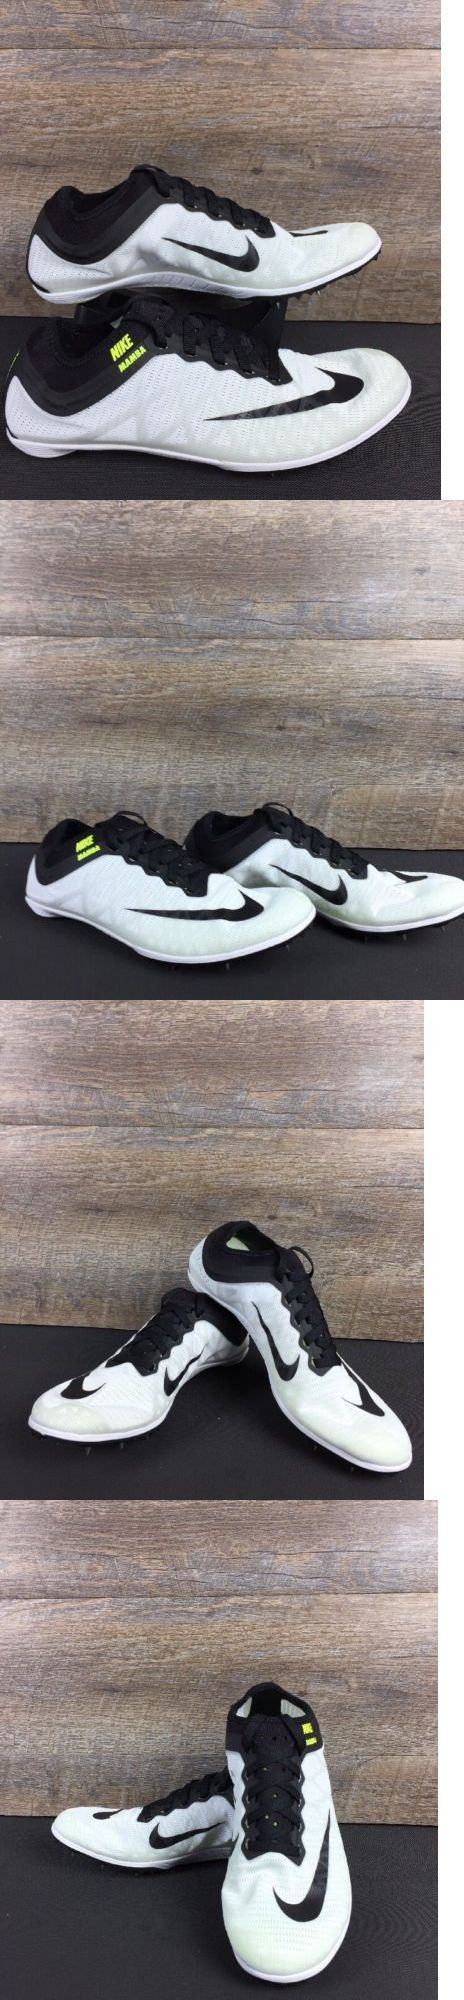 Track and Field 106981: Nike Mamba 3 Distance White Black Track And Field Spikes Mens Size 7 (706617-106) -> BUY IT NOW ONLY: $74.99 on eBay!